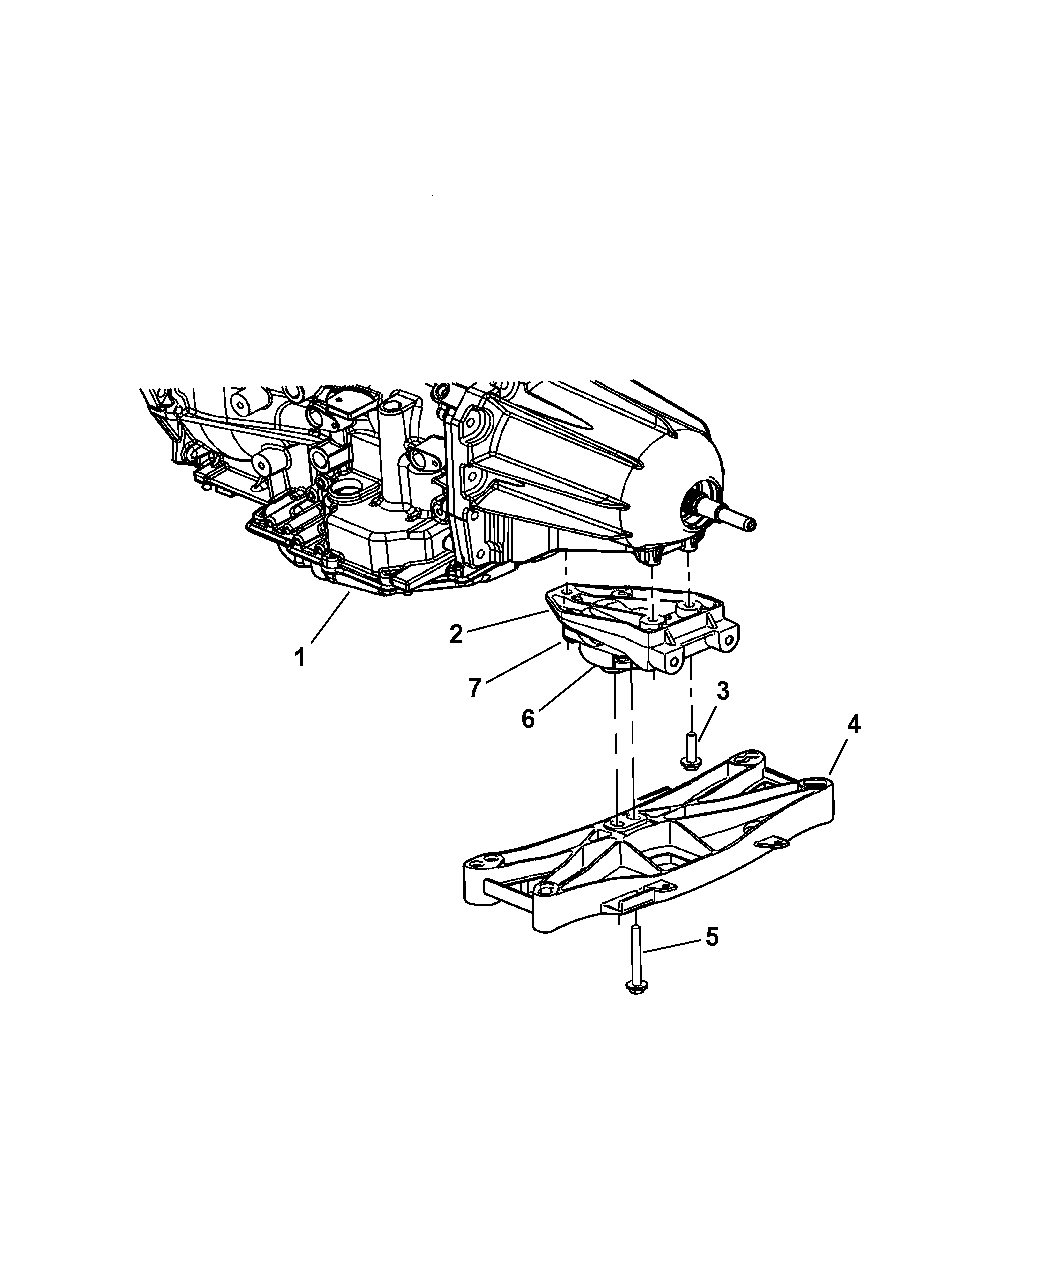 2005 5 7 Hemi Engine Diagram On Dodge Charger 3 5 Engine Diagram Egr